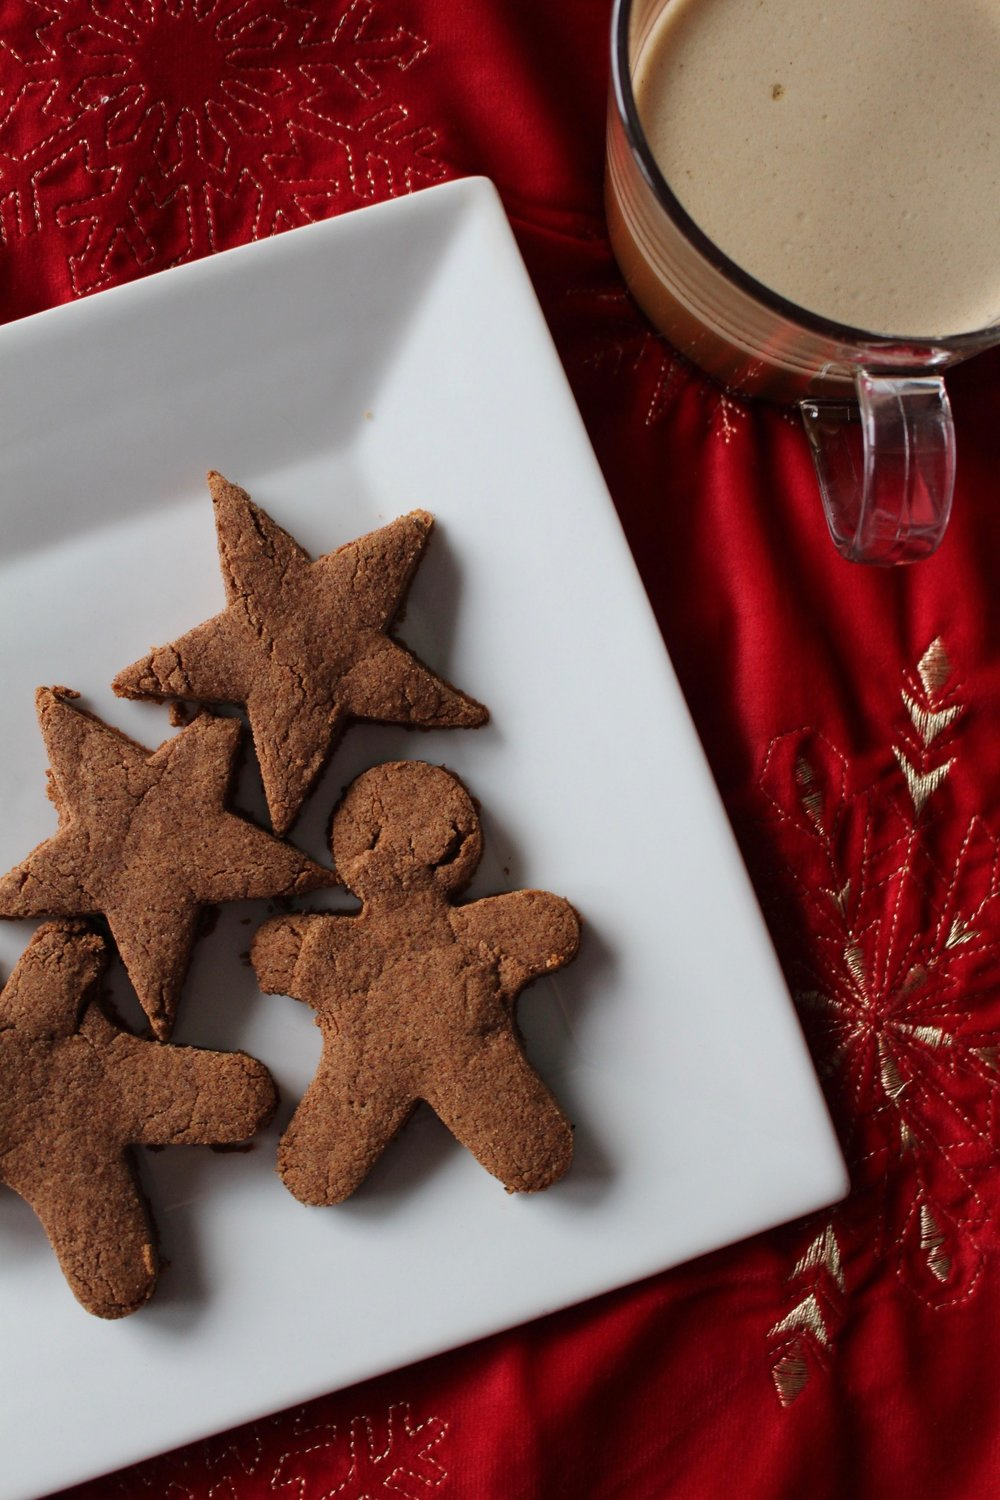 AIP Gingerbread Cookies / paleo / gluten free / egg free / nut free / paleo baking / aip baking / holiday baking / allergen free / nicolemcaruso.com